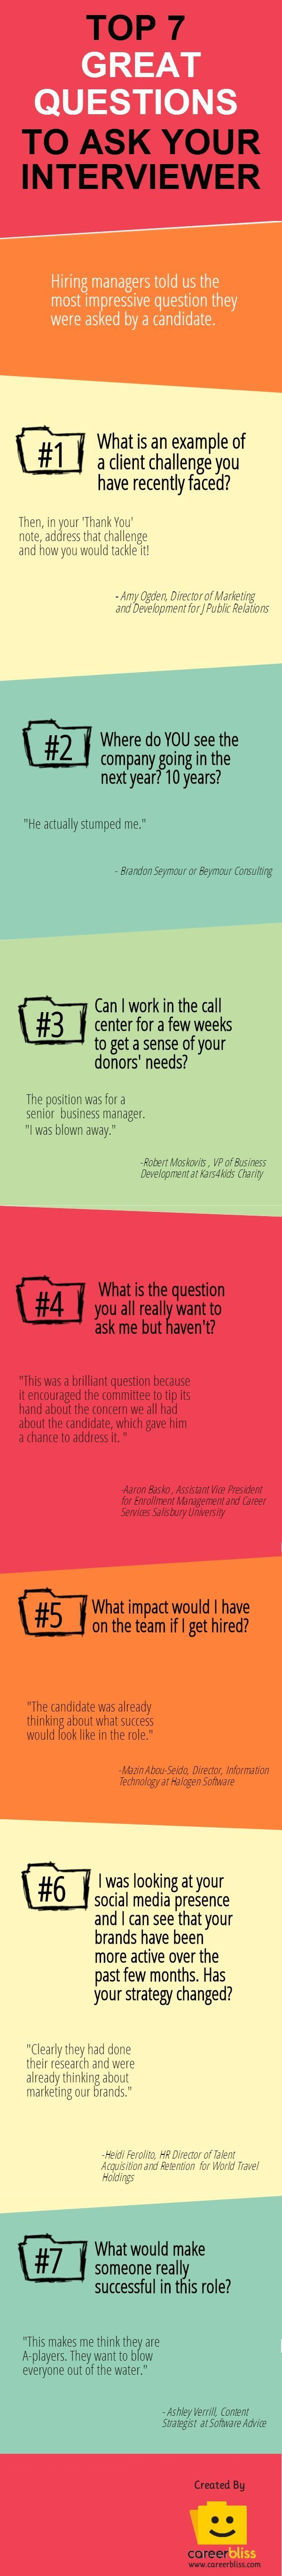 Some very good questions to ask at an interview.